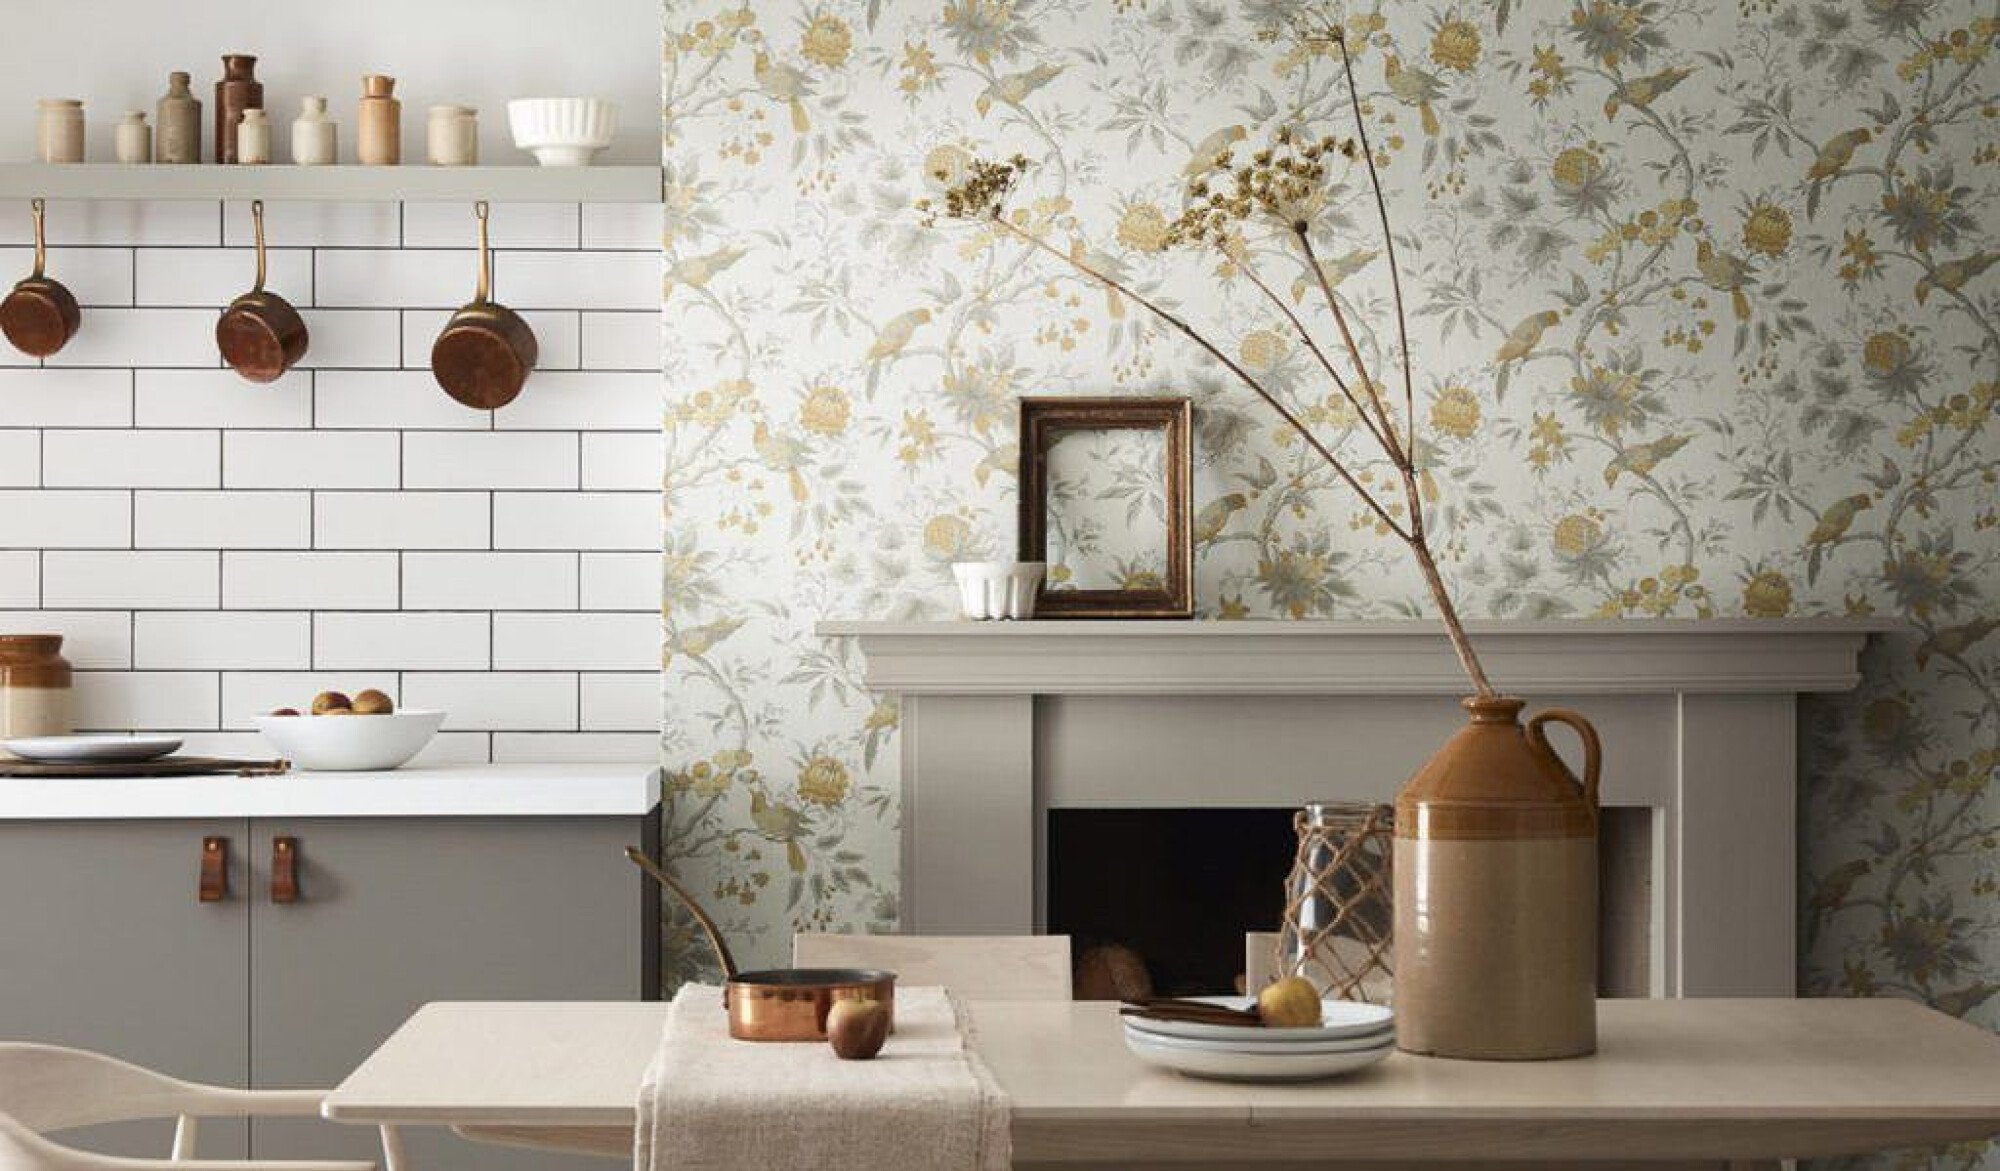 Scenery-wallpapers-1 80+ Unusual Kitchen Design Ideas for Small Spaces in 2021